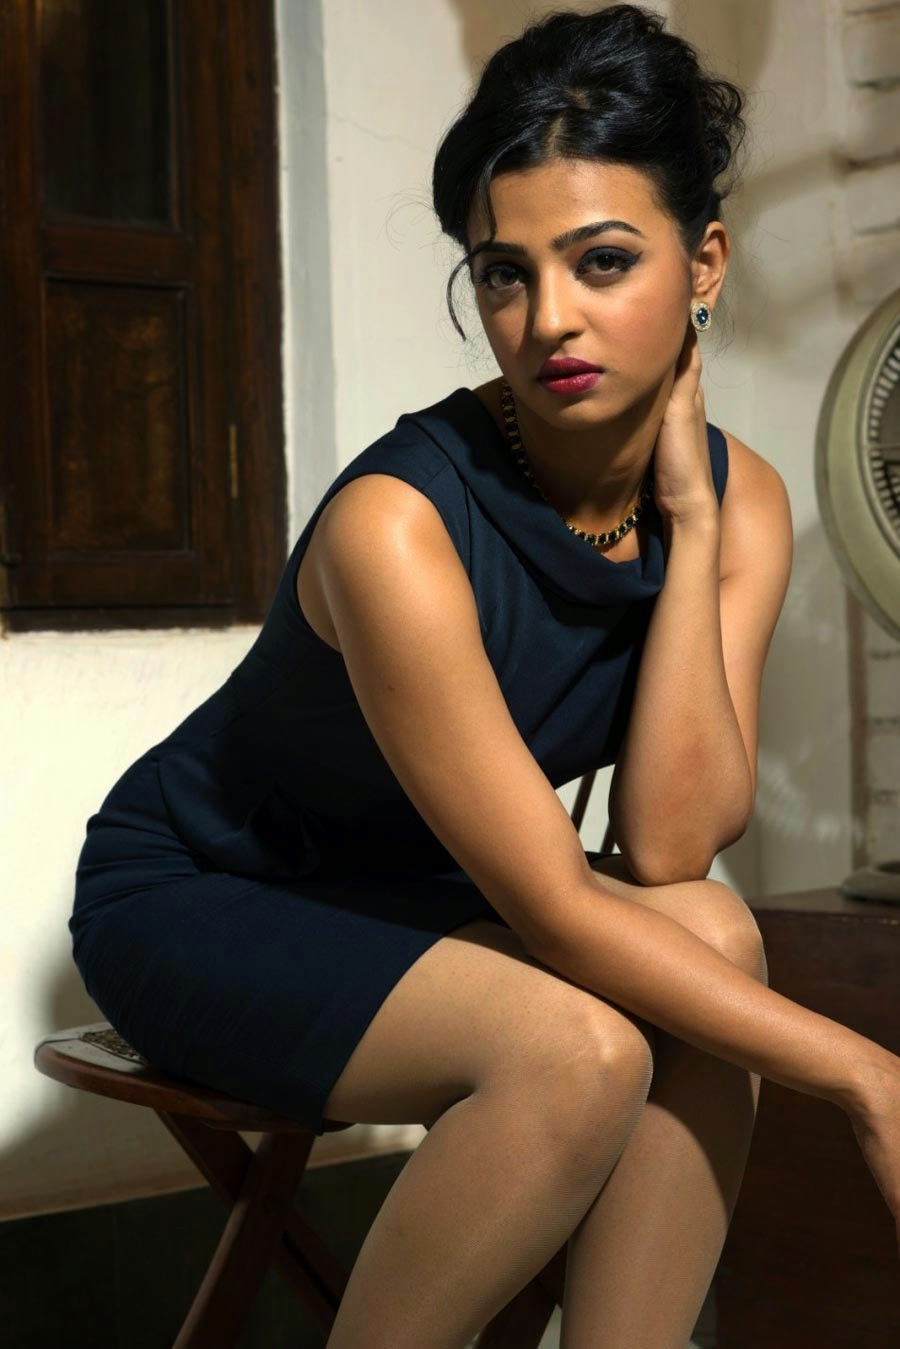 Actress Radhika Apte Stills Hd In Tamil Hindi Bengali -6193